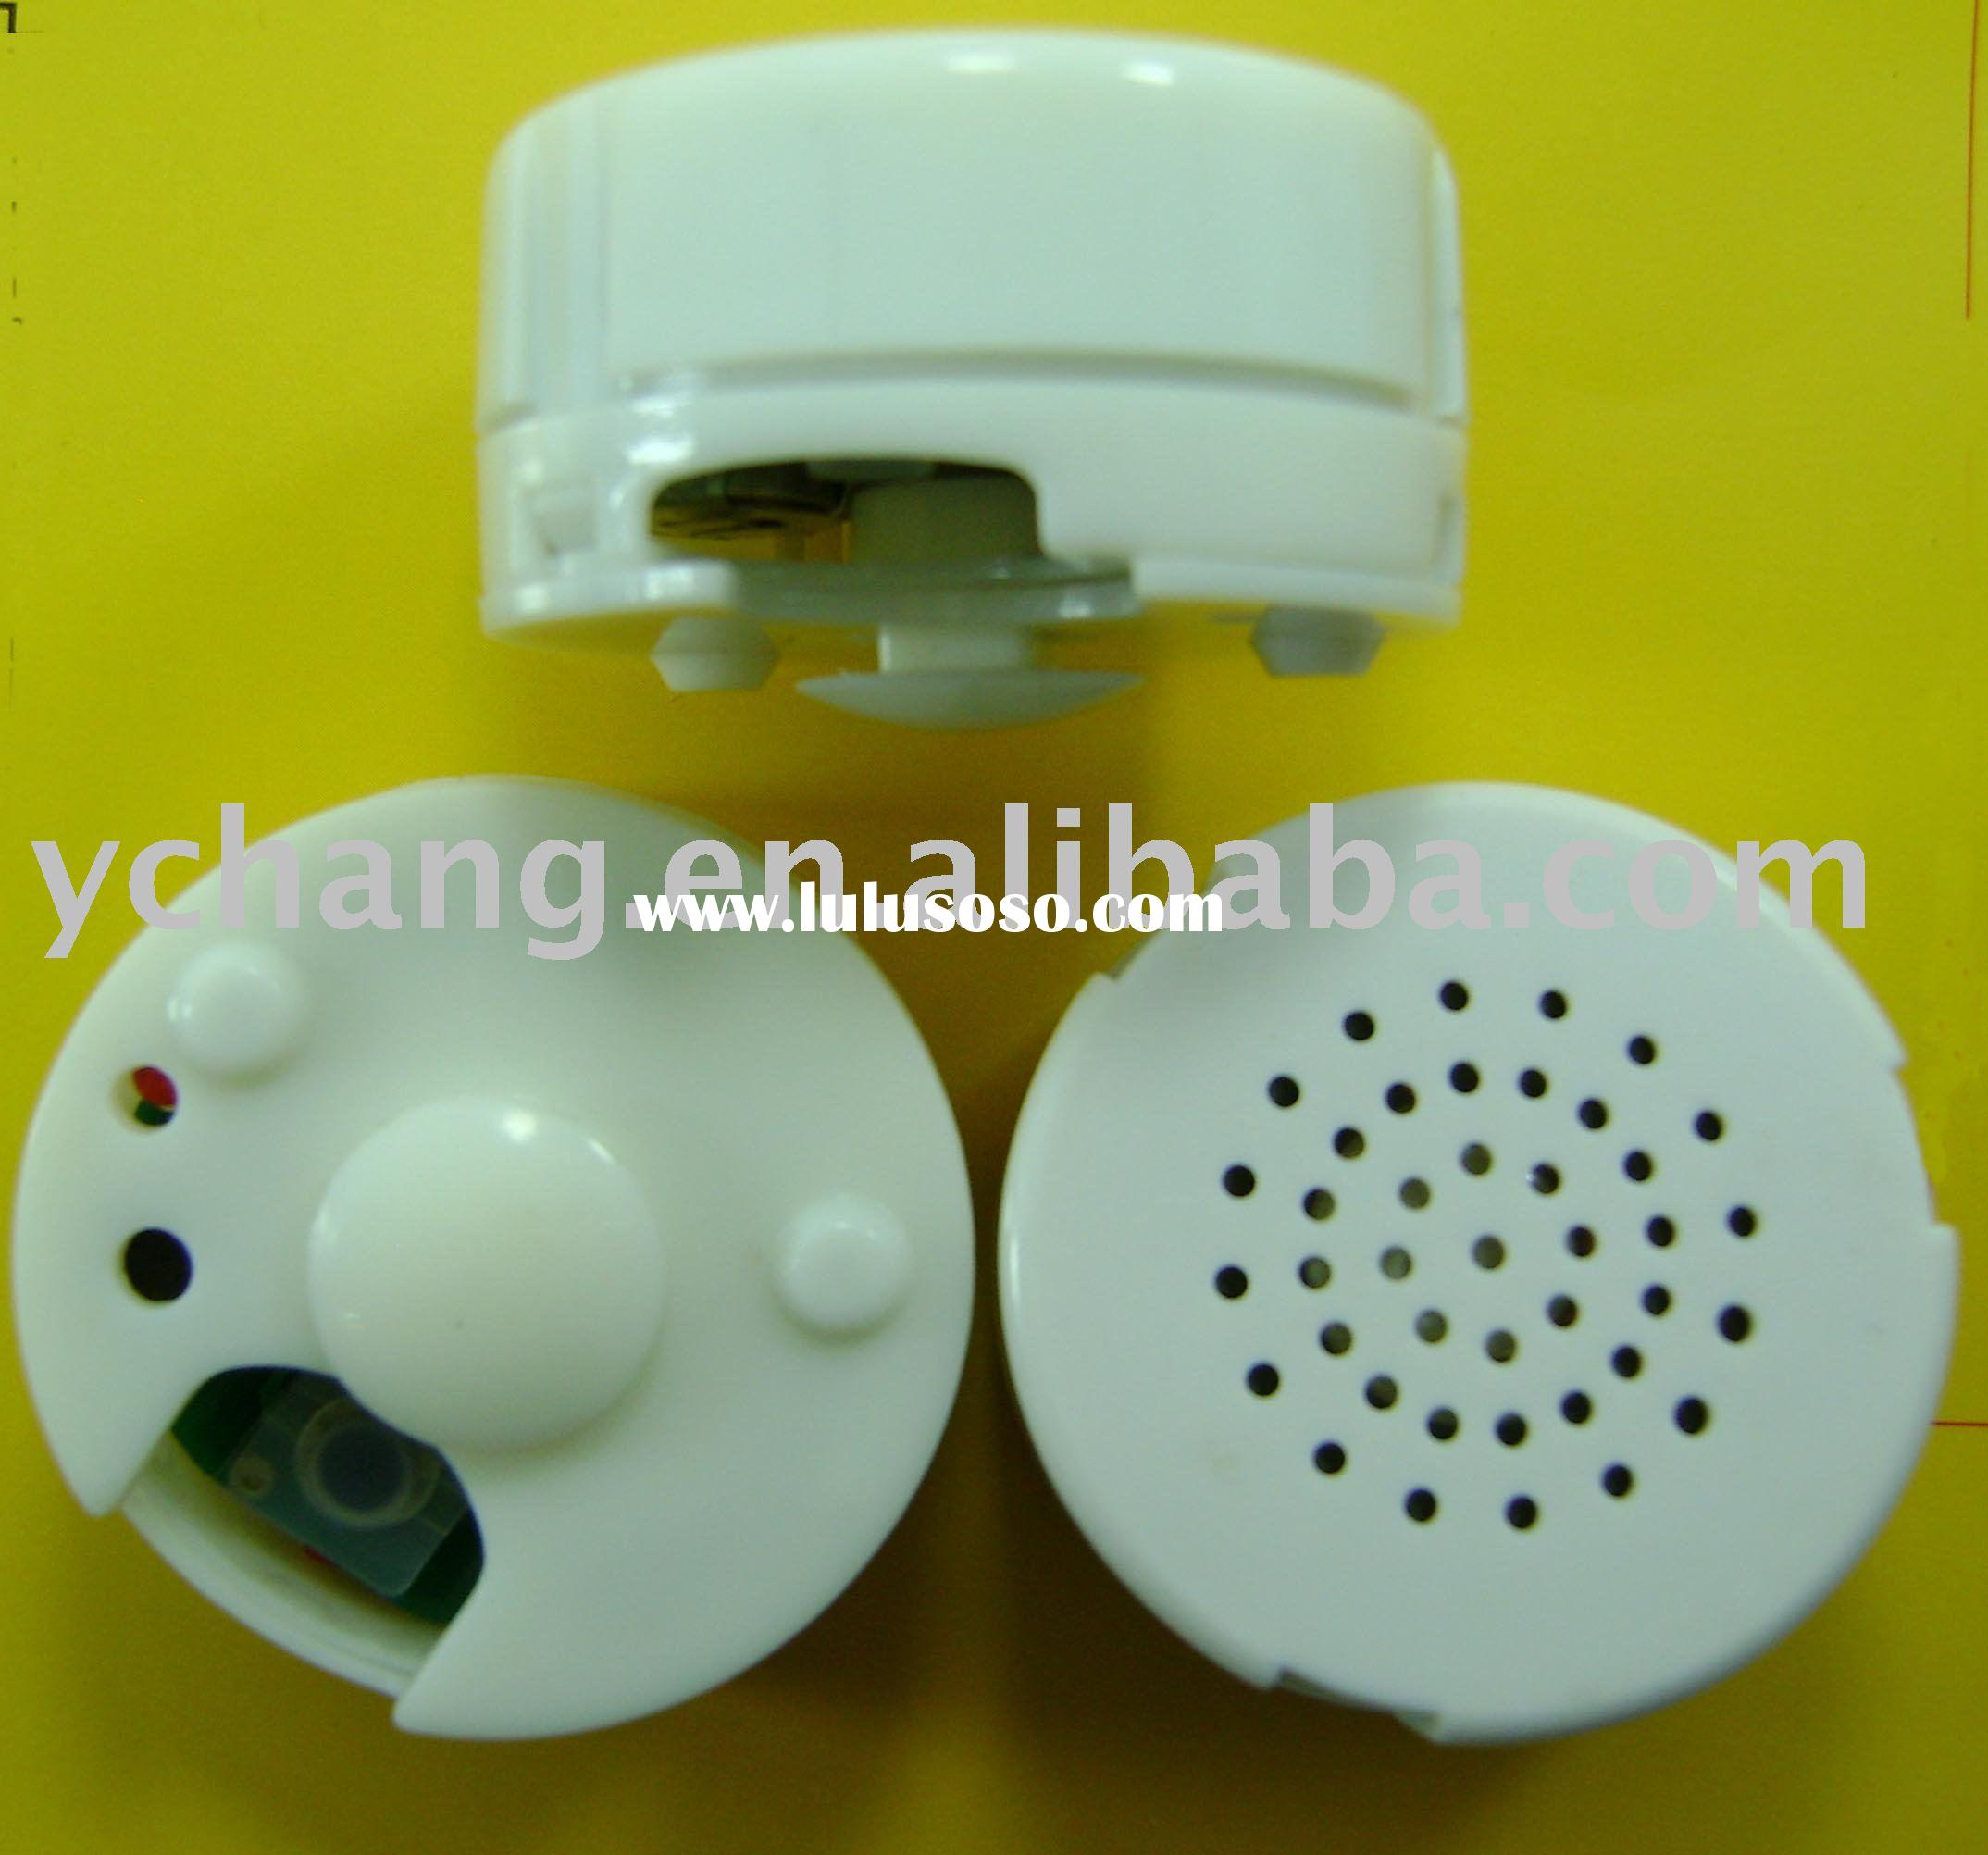 Sound Box for Toy/Sound module/Recordable voice recorder